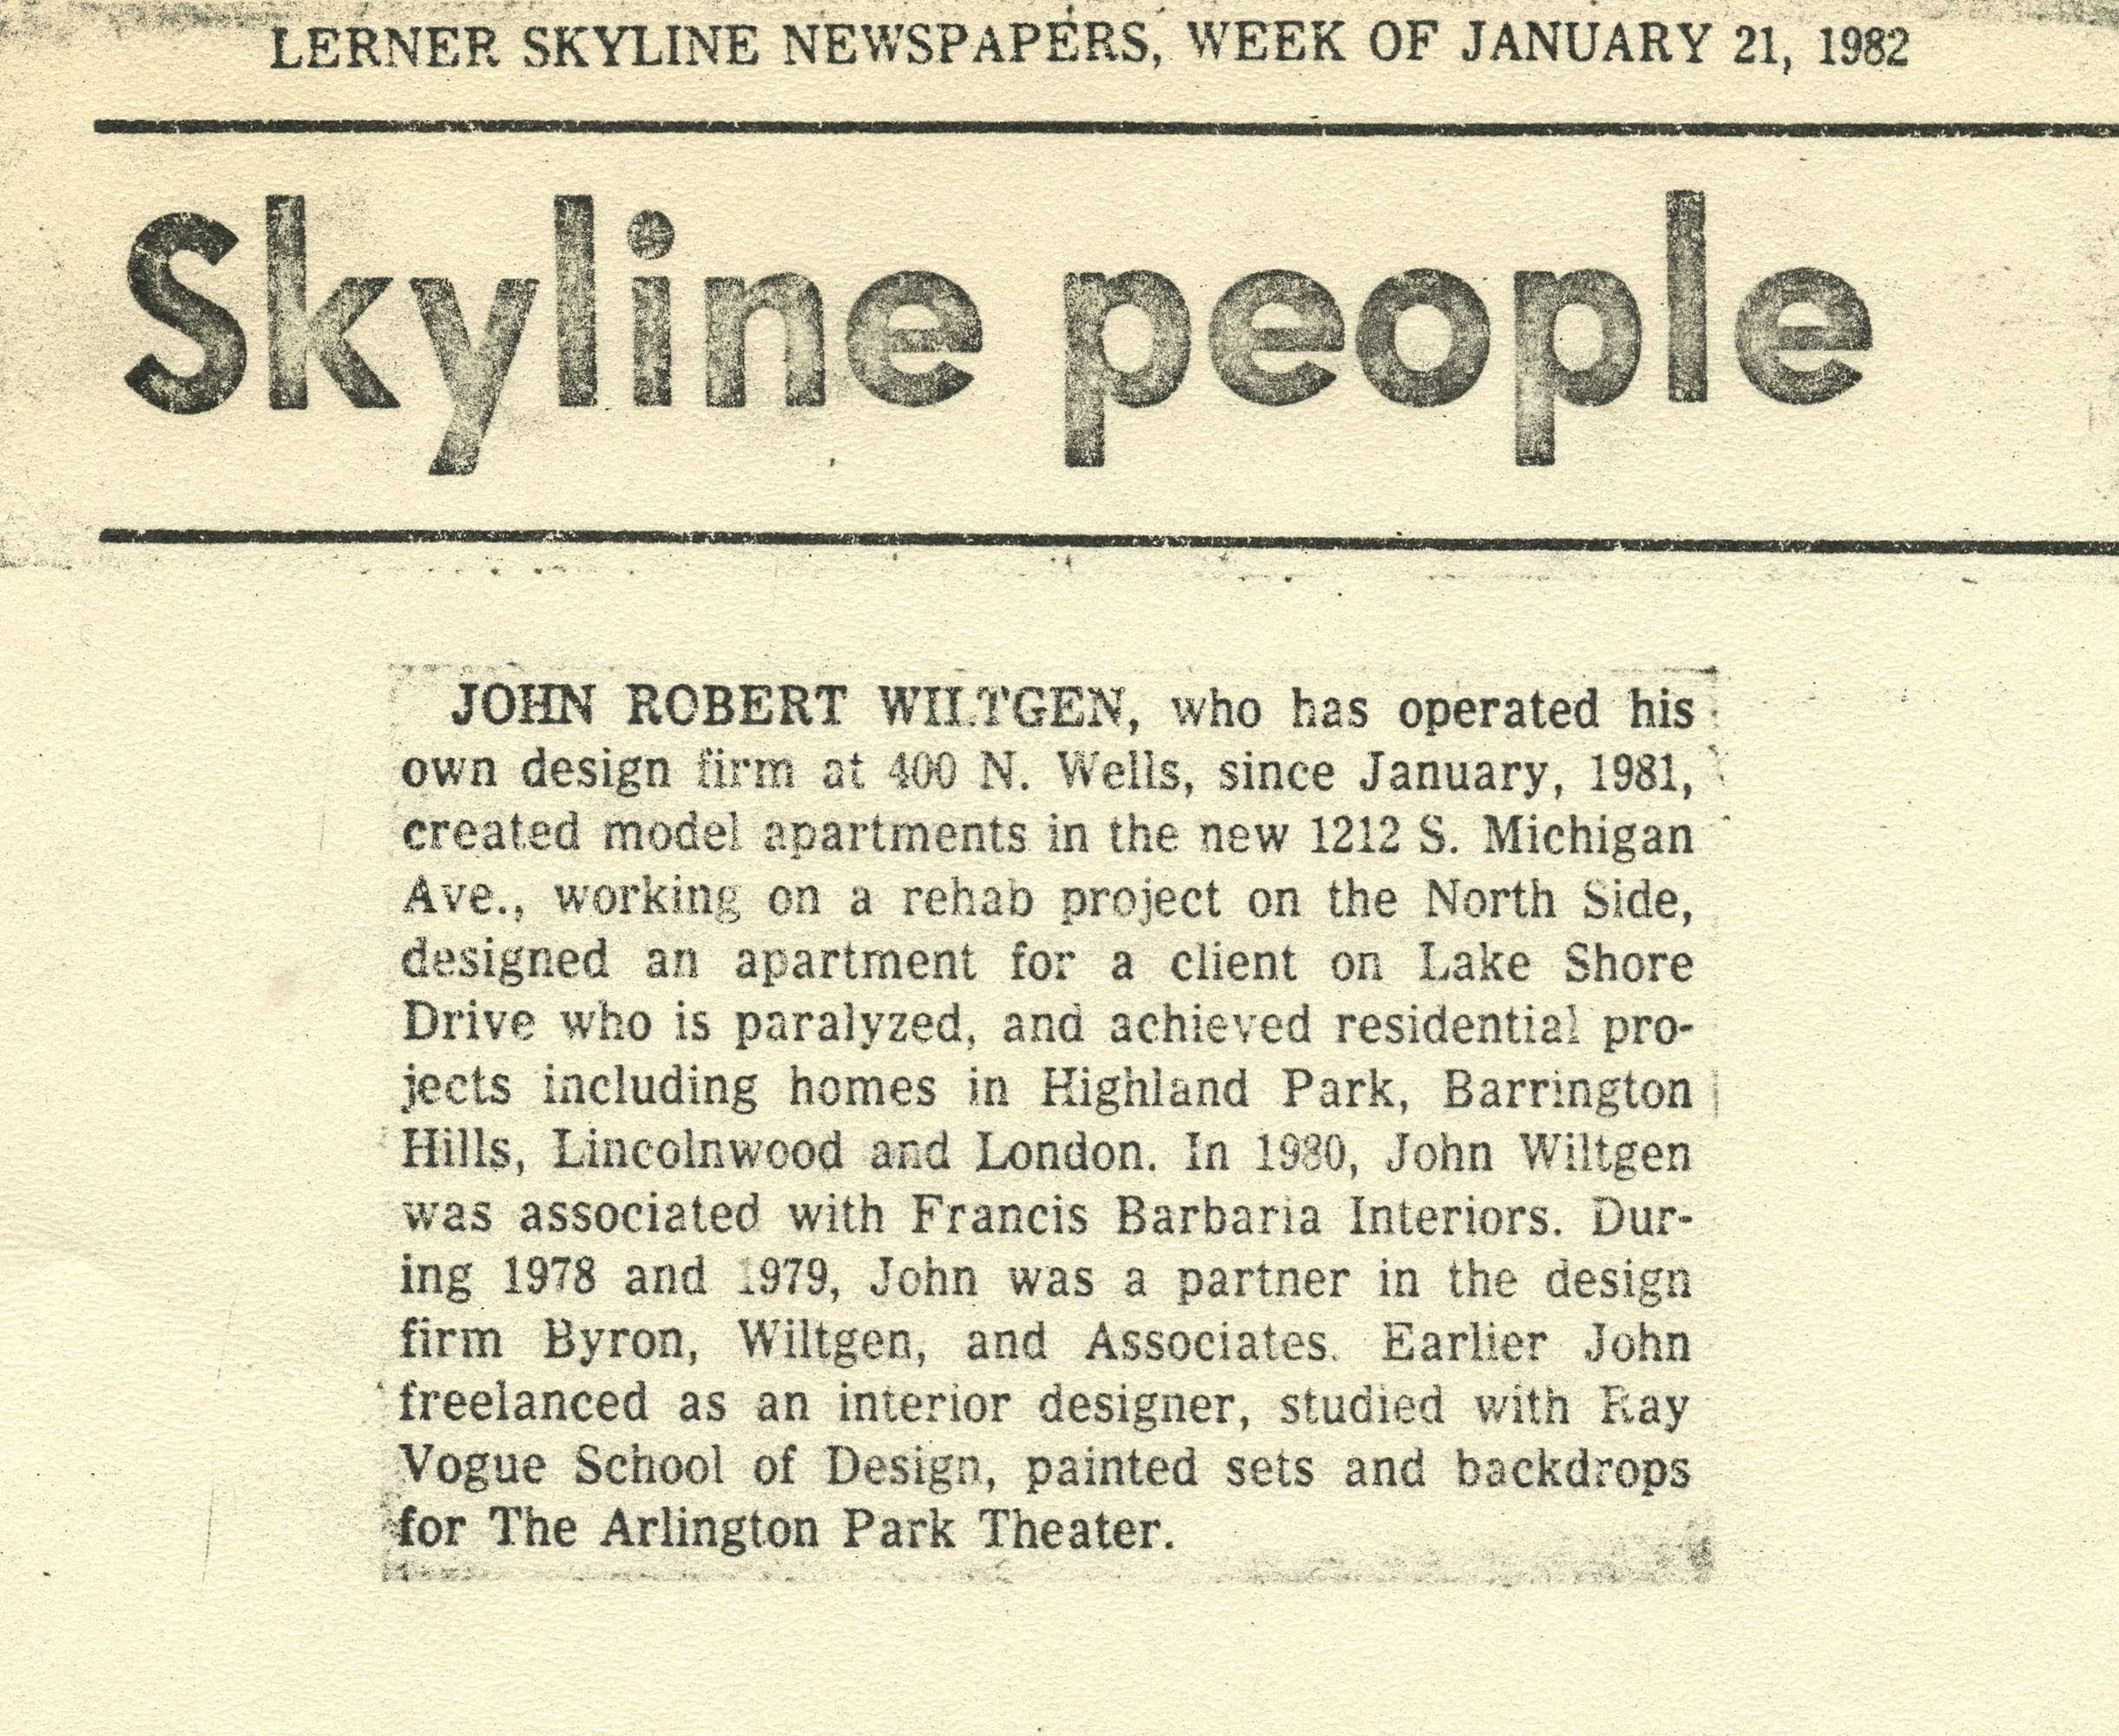 jan21,1982 Lerner skyline newspapers- Skyline People